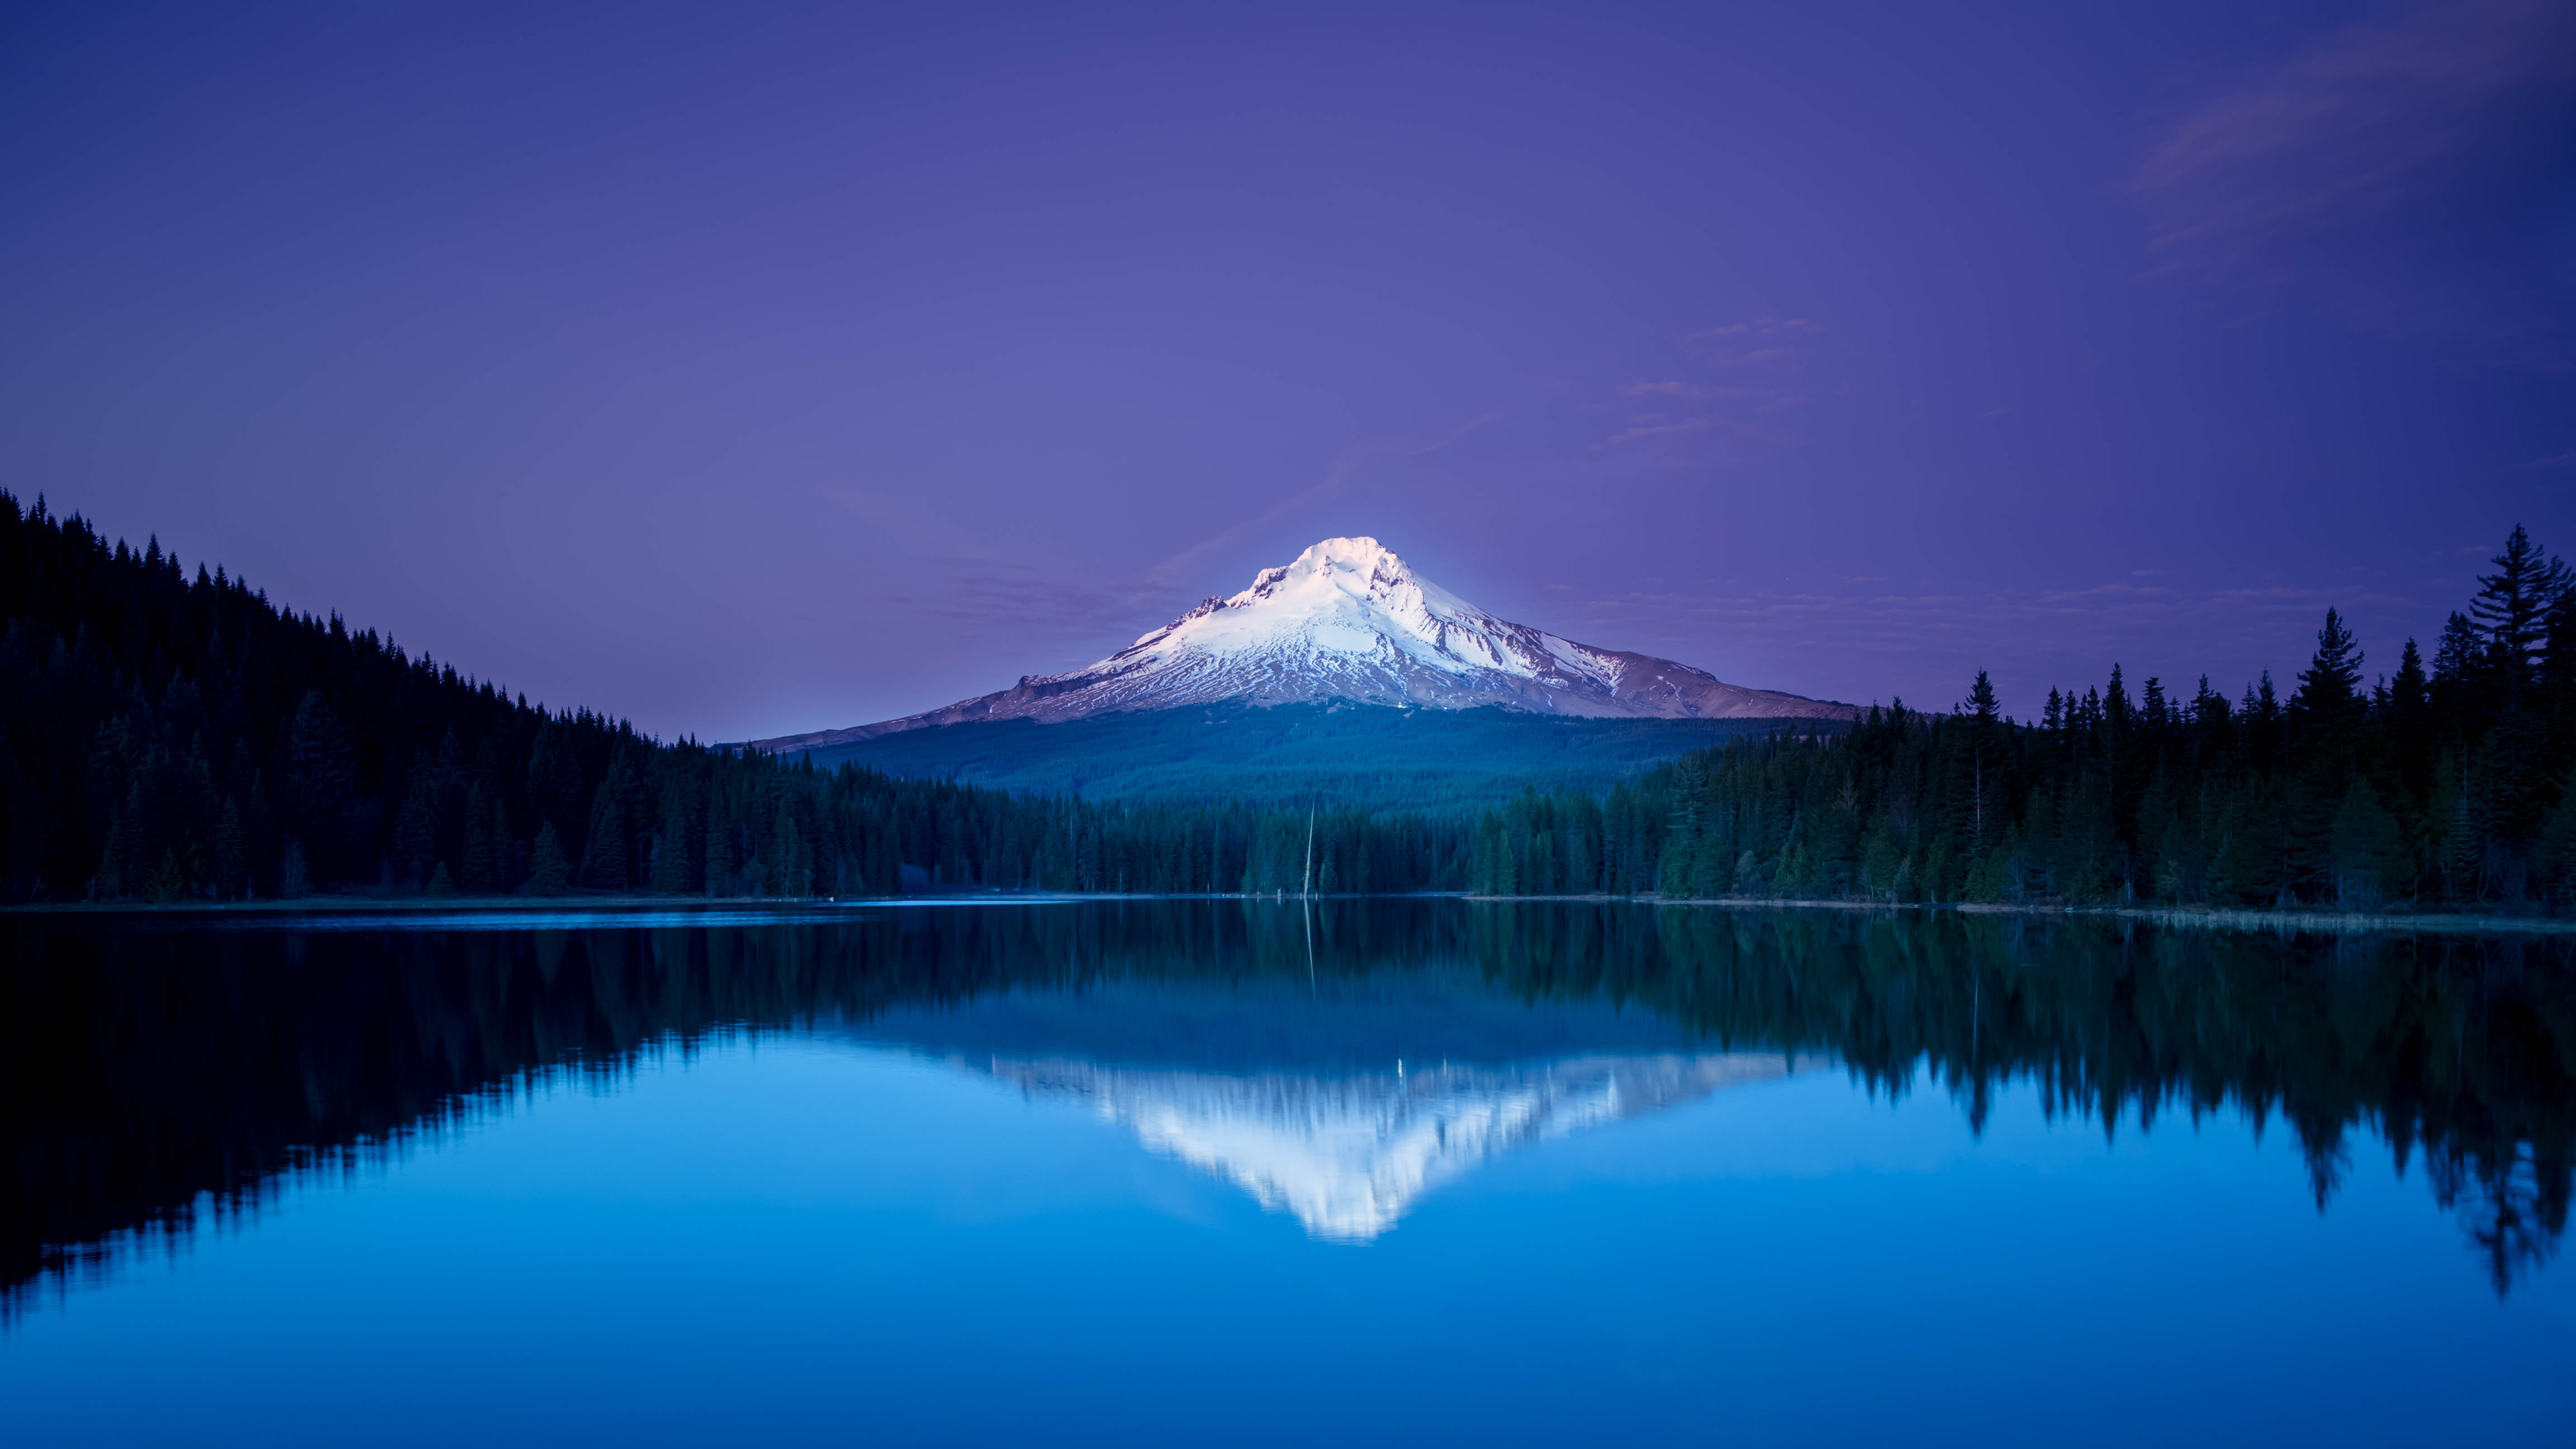 Mountain Reflection 4K Ultra HD Wallpaper